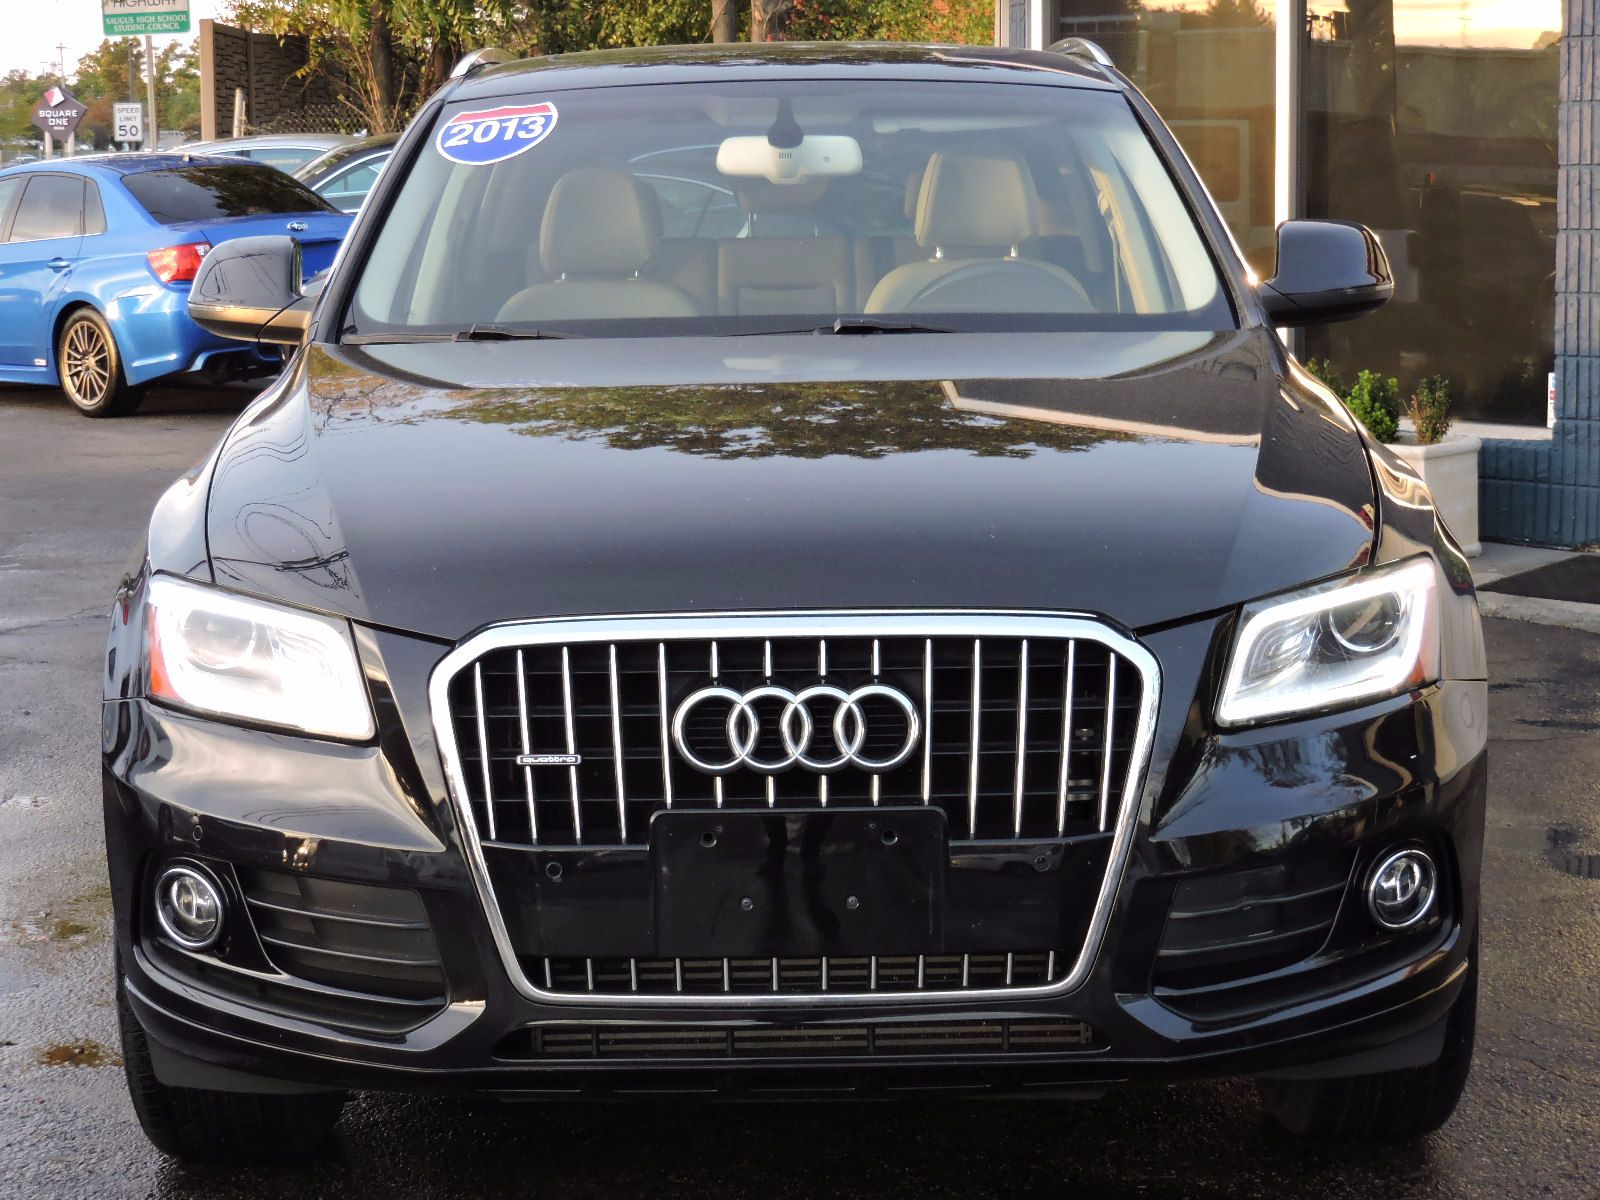 2013 Audi Q5 Premium Plus - 2.0T - Quattro - All Wheel Drive - Navigation